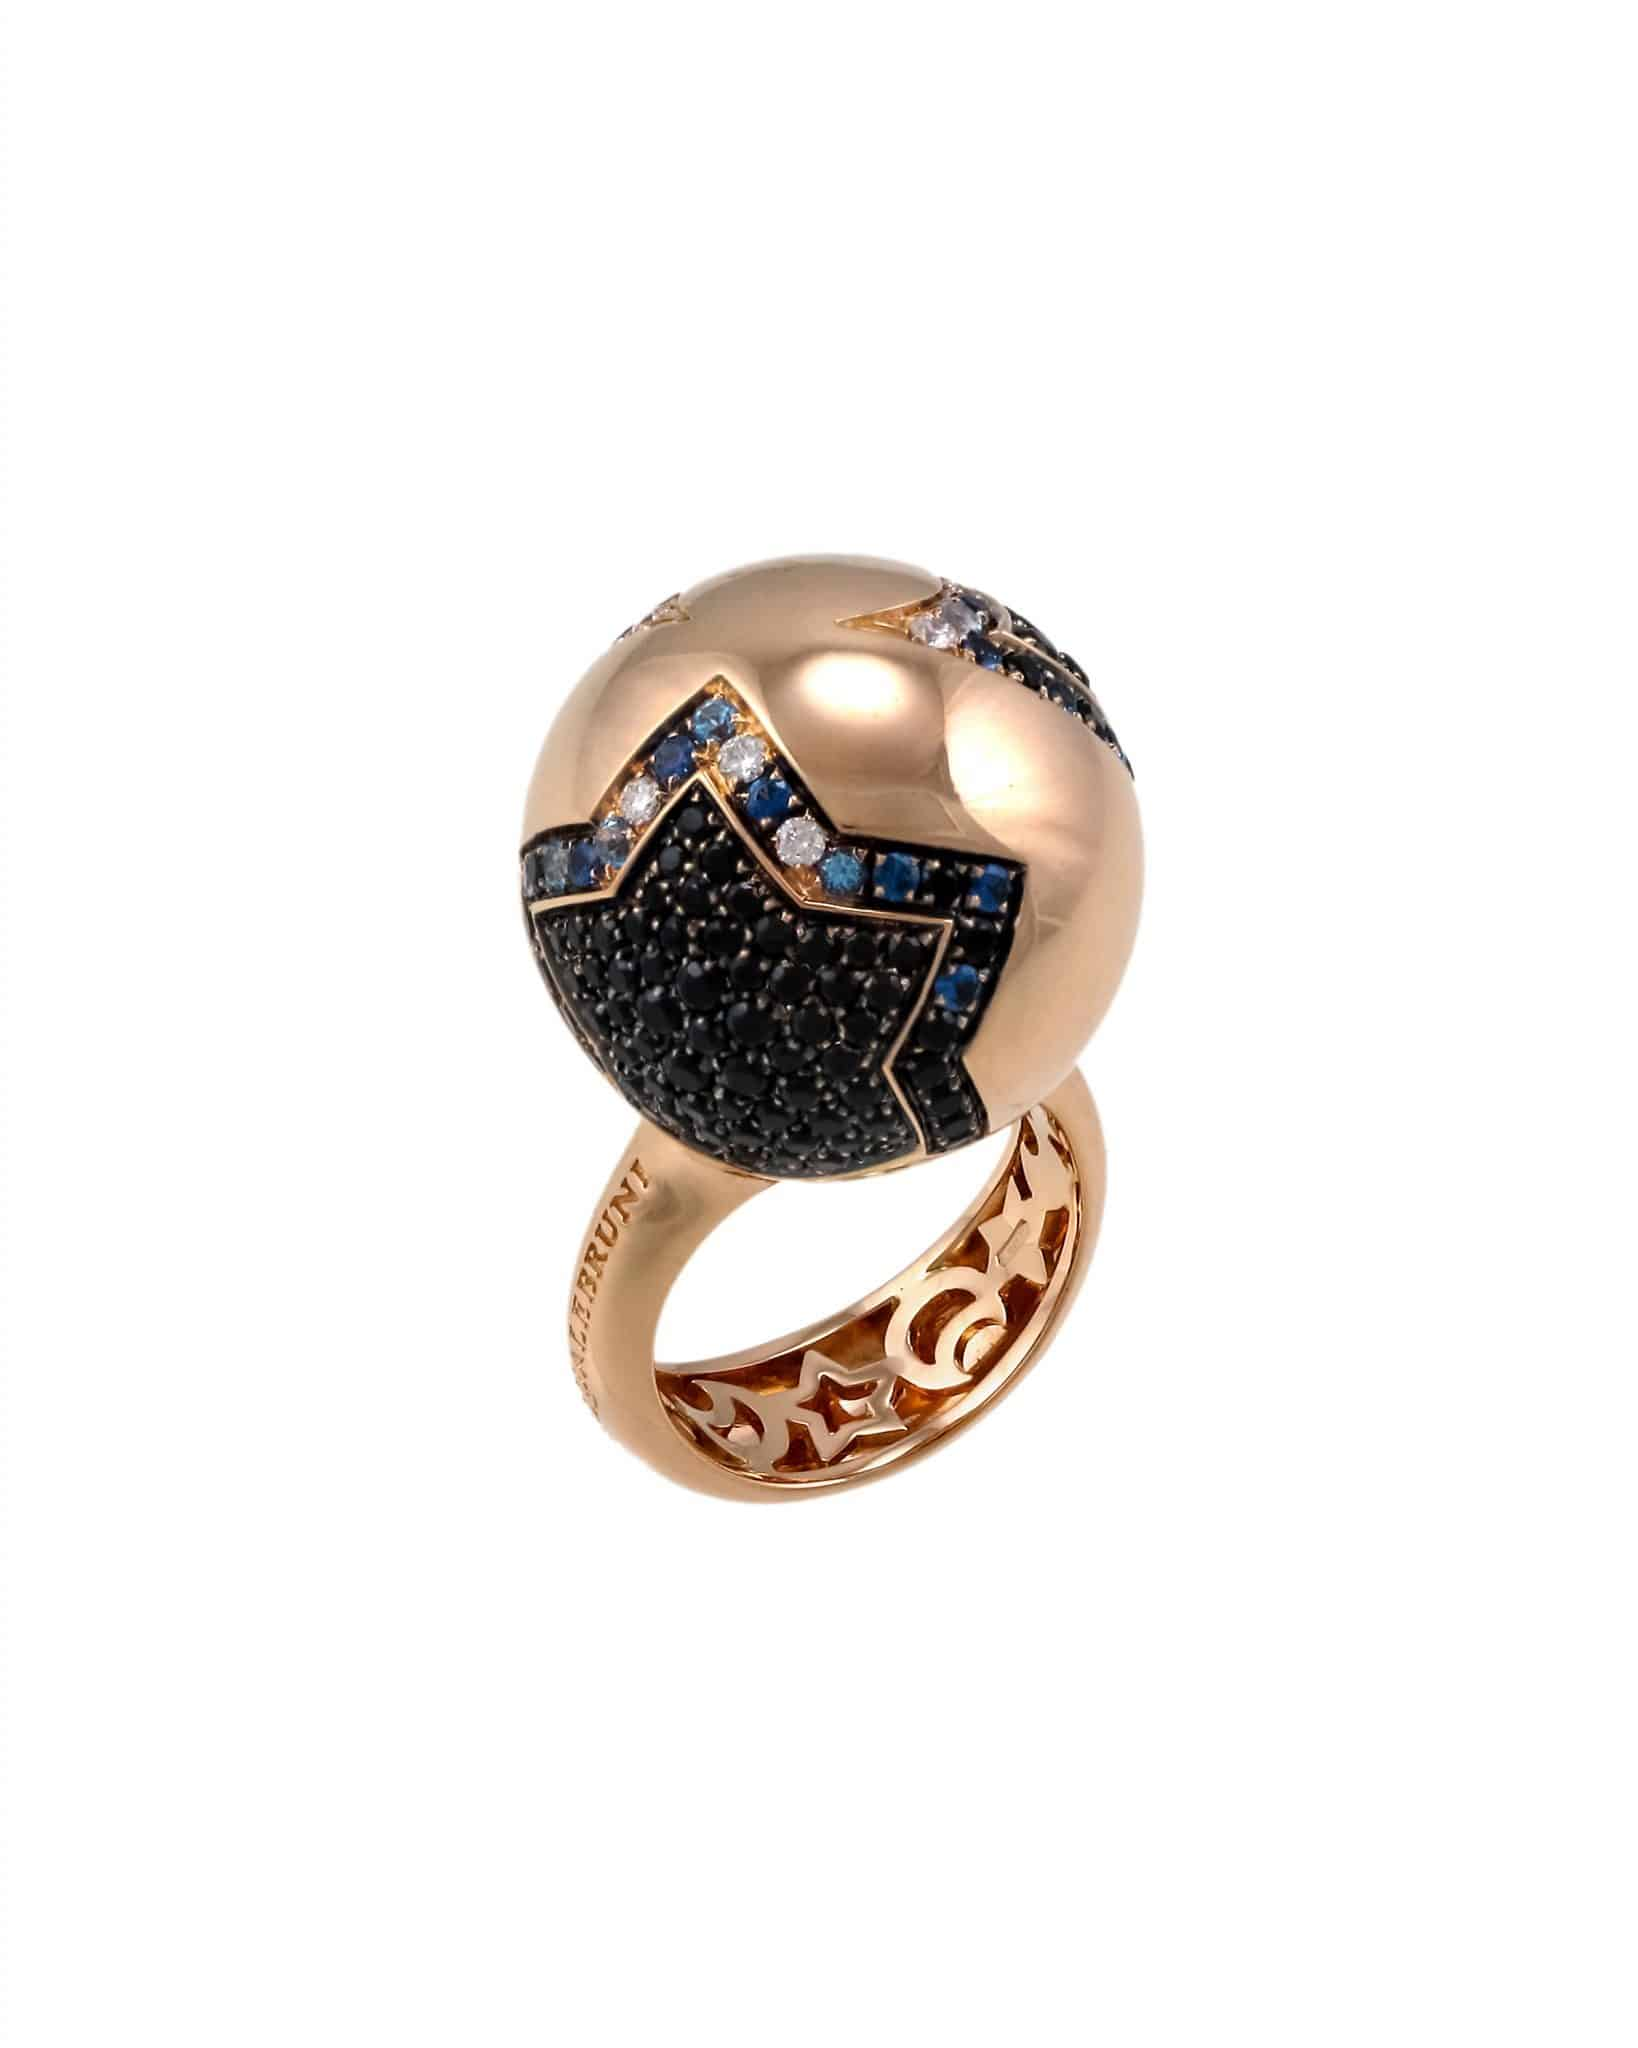 """PASQUALE BRUNI – """"SOGNI D'ORO"""" 18K Red Gold Star-Moon Ring 14033R #14"""